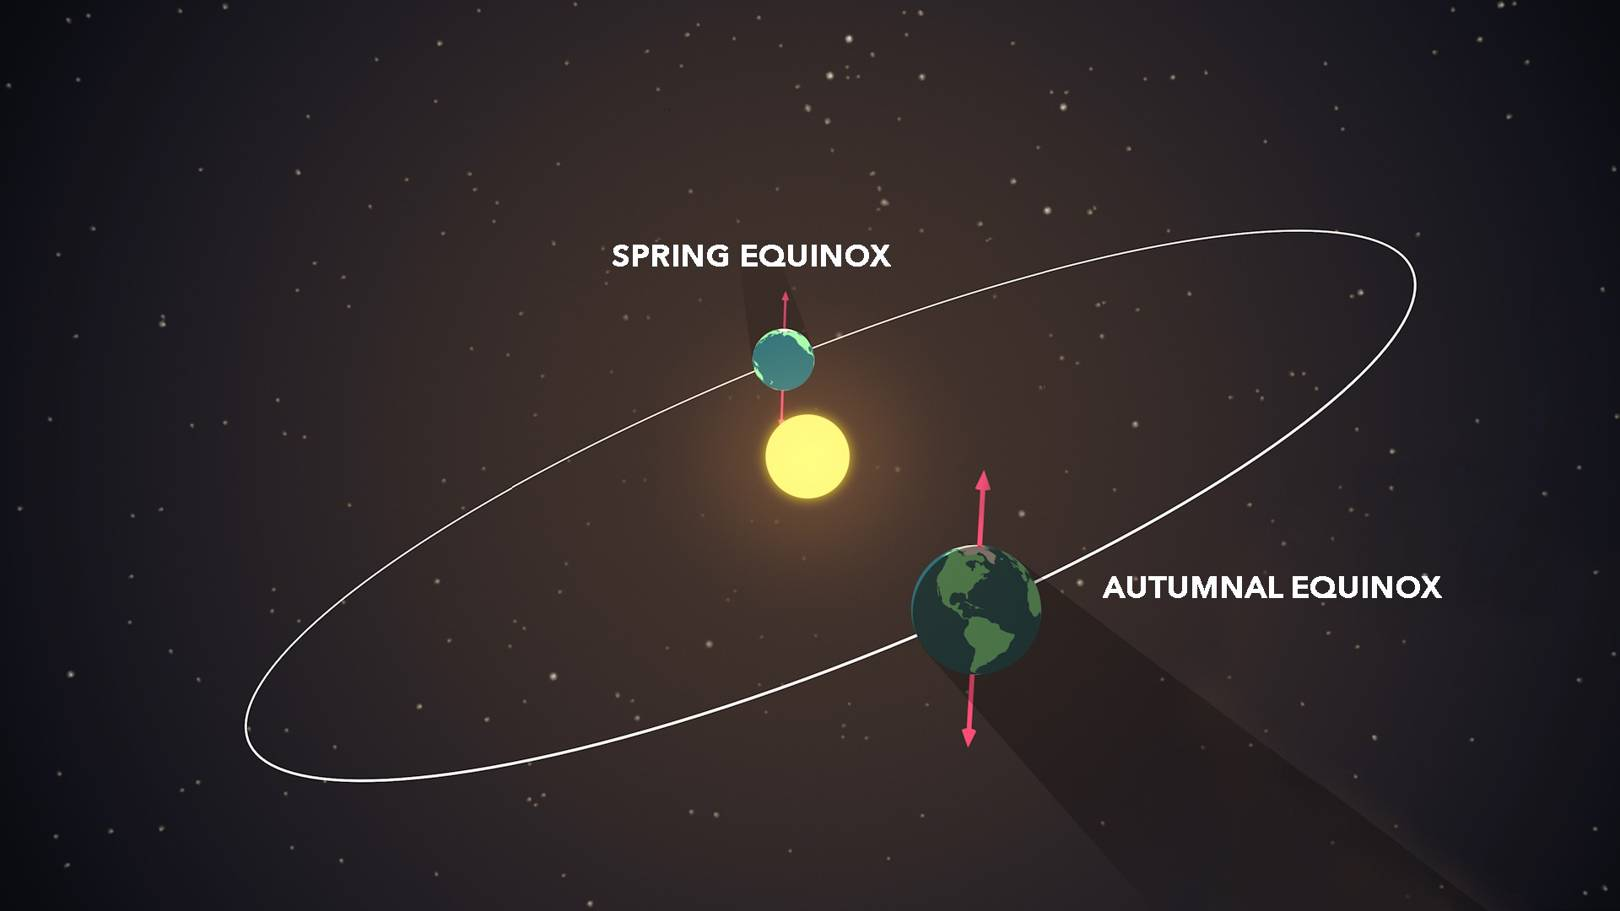 Spring Equinox Spring Is Sprung But >> Spring Equinox 2017 Five Facts You Need To Know Wired Uk